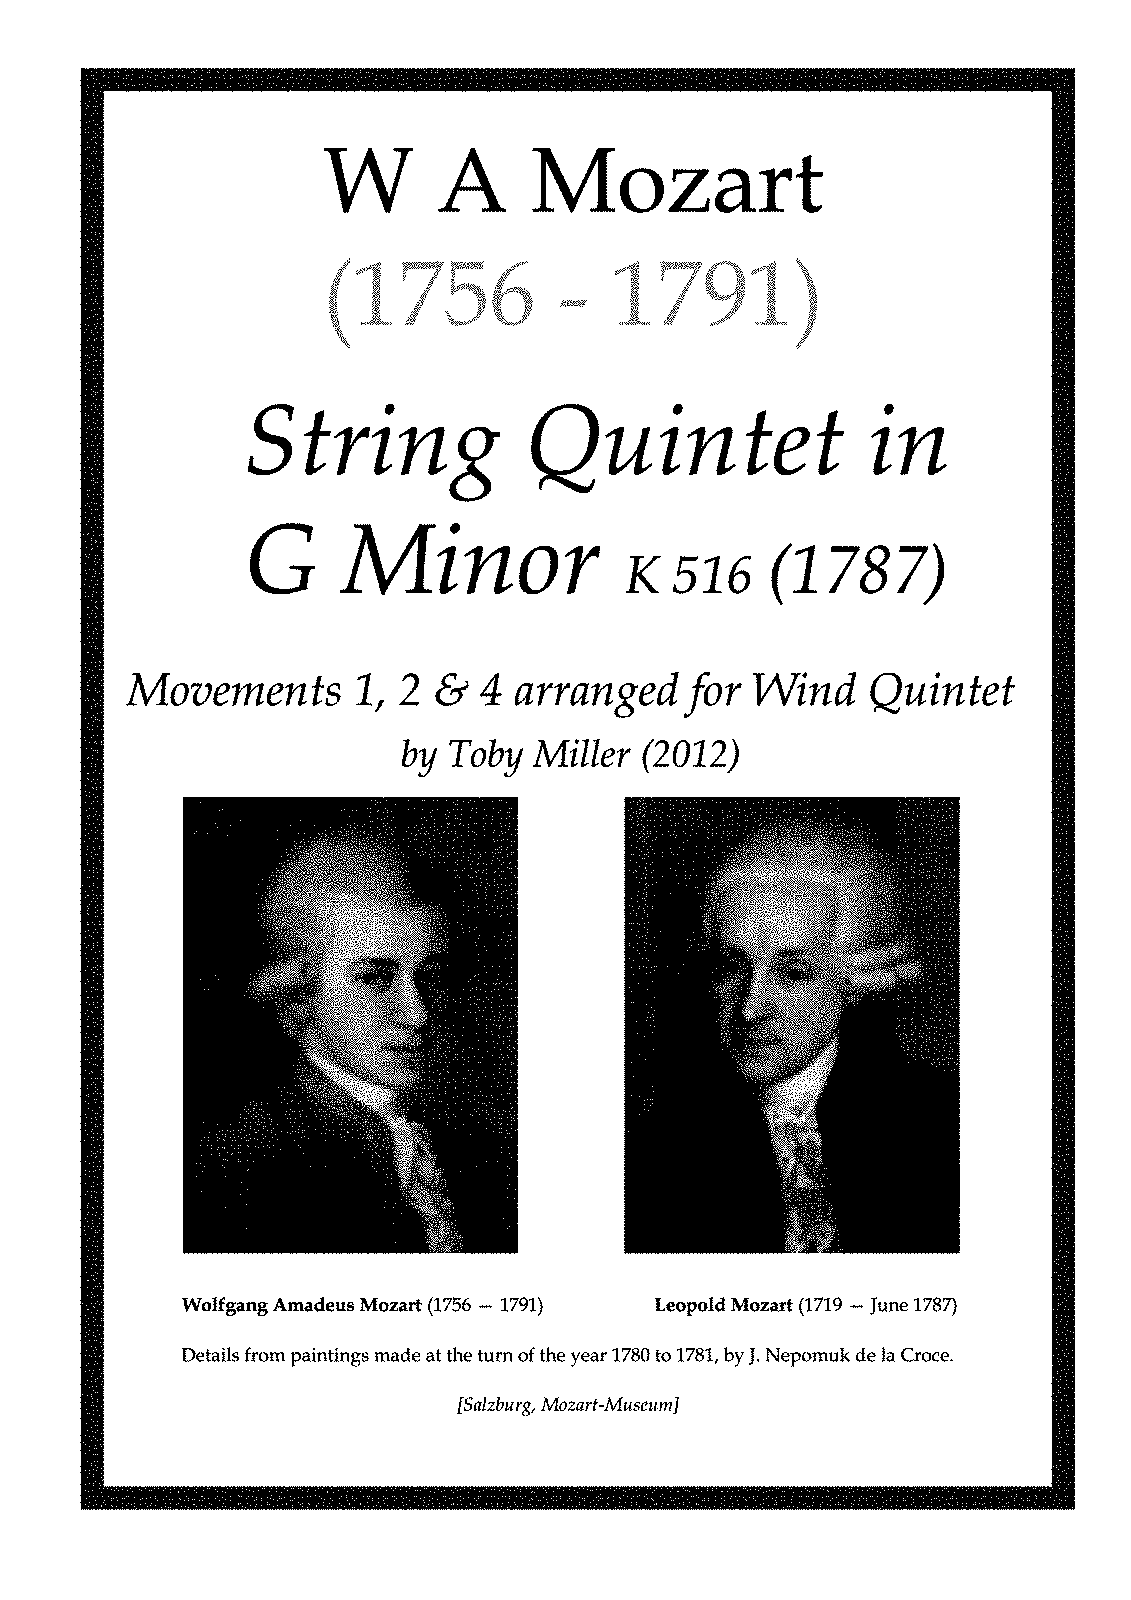 PMLP05422-Mozart String Quintet in G minor K516 mvts i ii iv arr for wind - Score and Notes.pdf